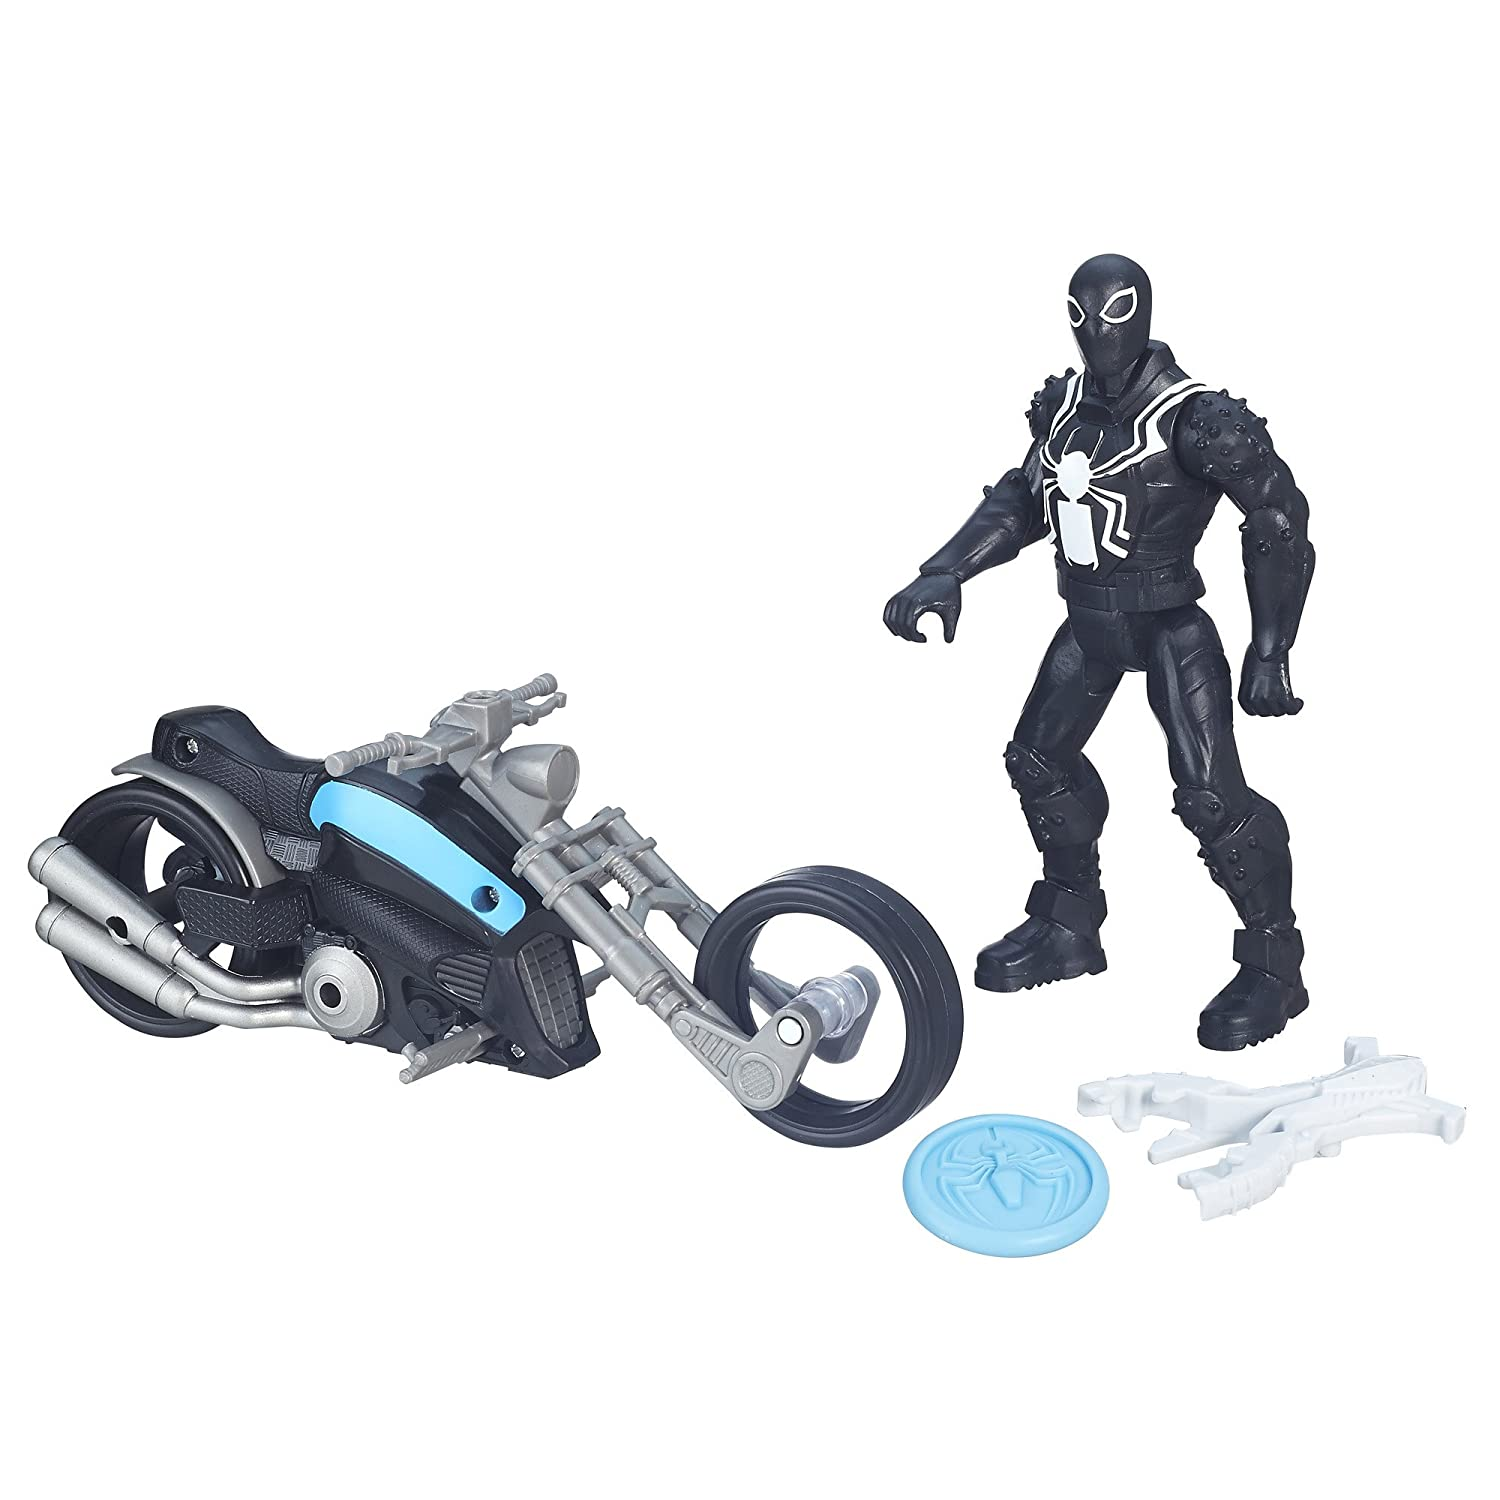 The Sinister Six Agent Venom with Symbiote Cycle Ultimate Spider-Man vs